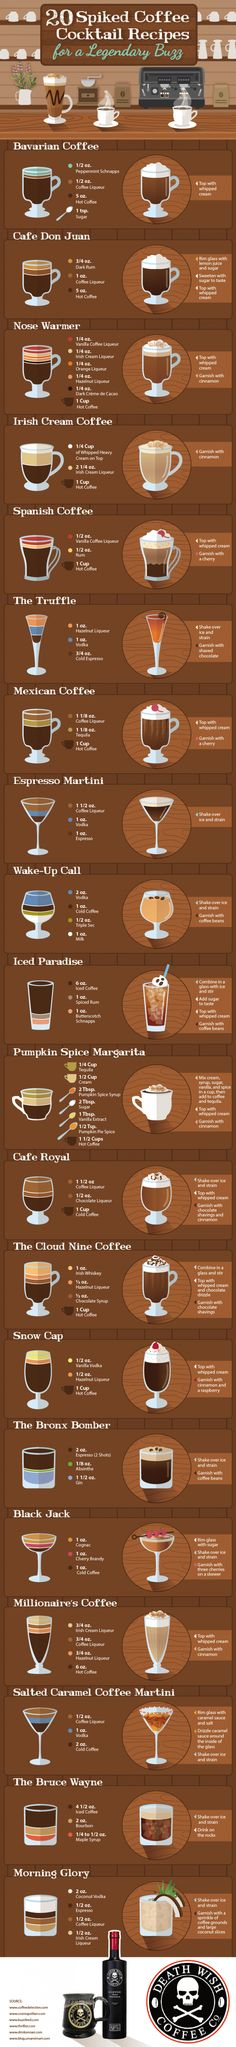 Infographic: 20 Spiked Coffee Cocktail Recipes for a Legendary Buzz #Infographics